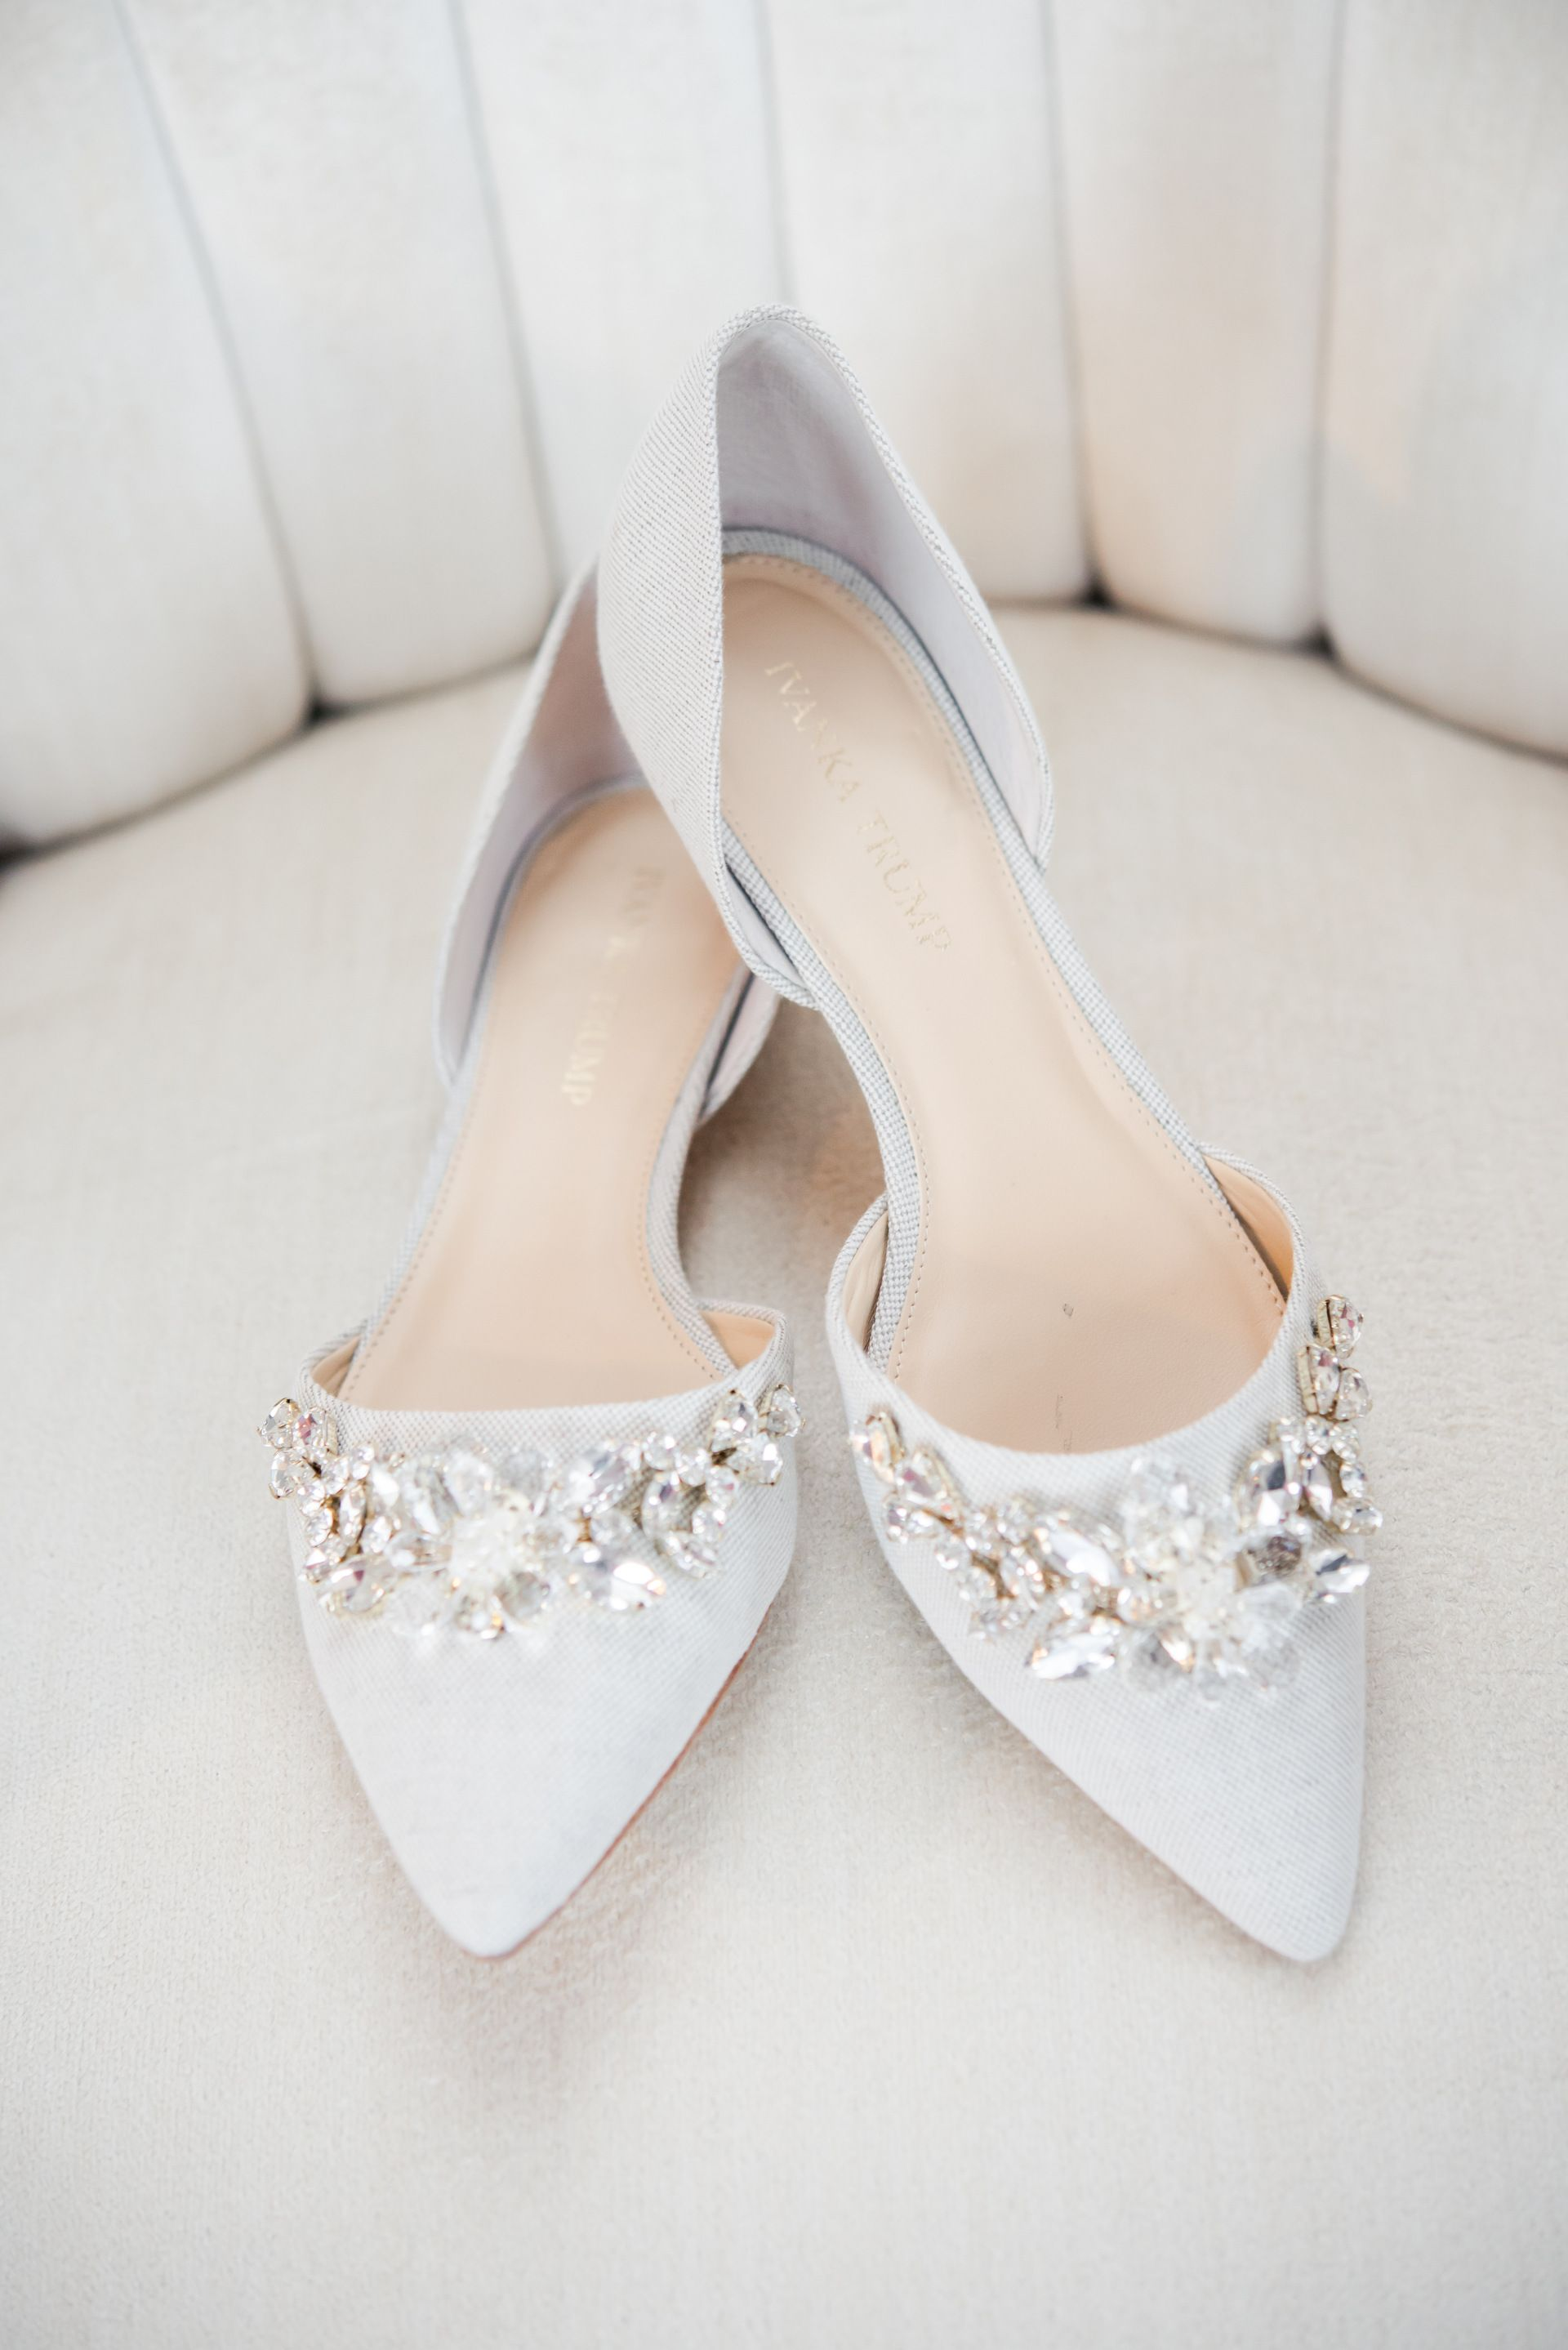 Glitzy D Orsay Heels Classic Meets Glamorous White Bridal Shoes Diamond Embellishments Da Embellished Wedding Shoes Fun Wedding Shoes Wedding Shoes Flats